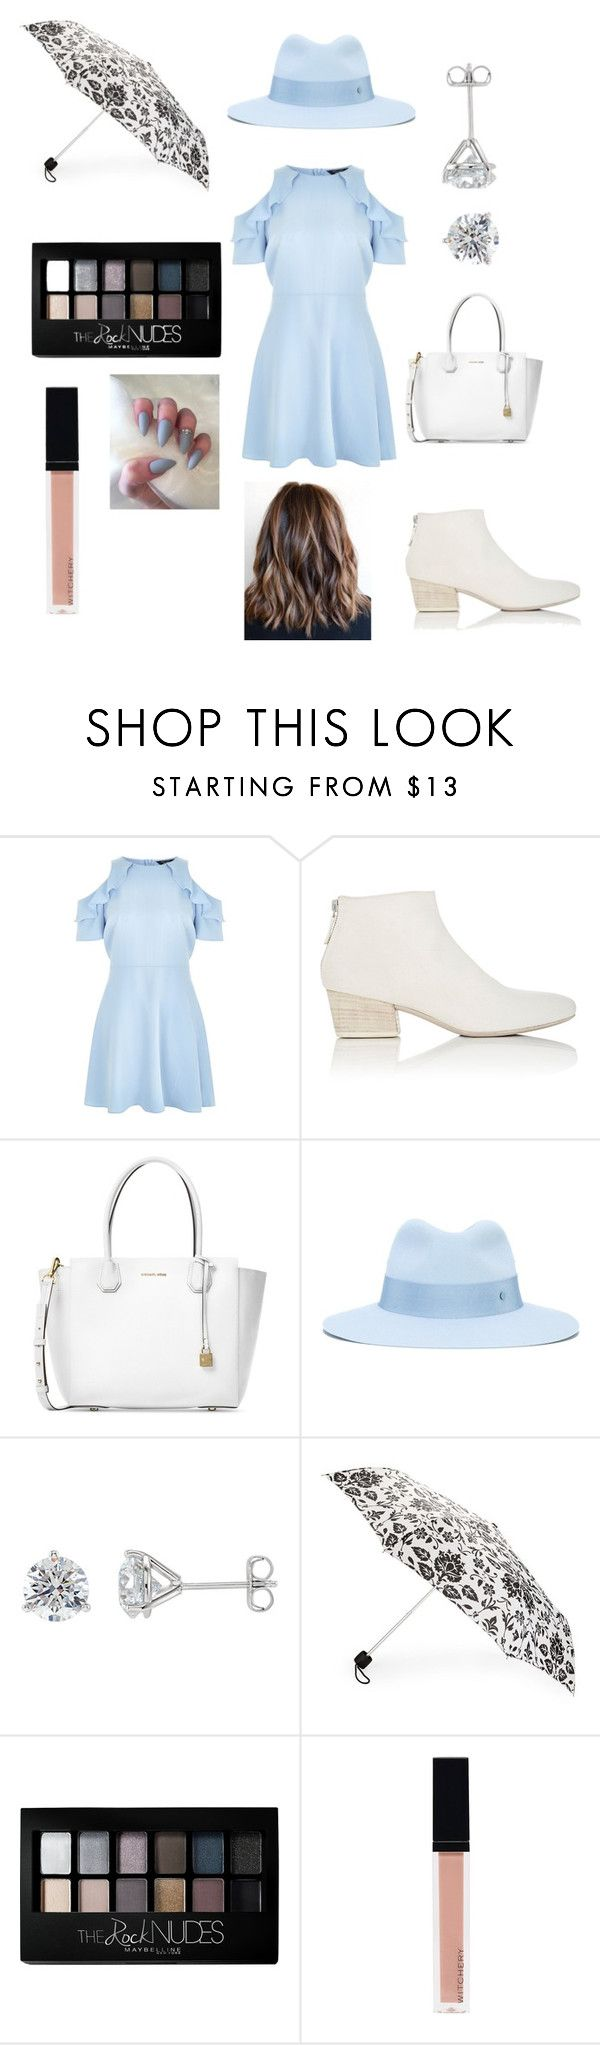 """""""A Rainy Day 🌧"""" by savannah-smith-6 ❤ liked on Polyvore featuring New Look, Marsèll, Michael Kors, Maison Michel, Fulton, Maybelline and Witchery"""